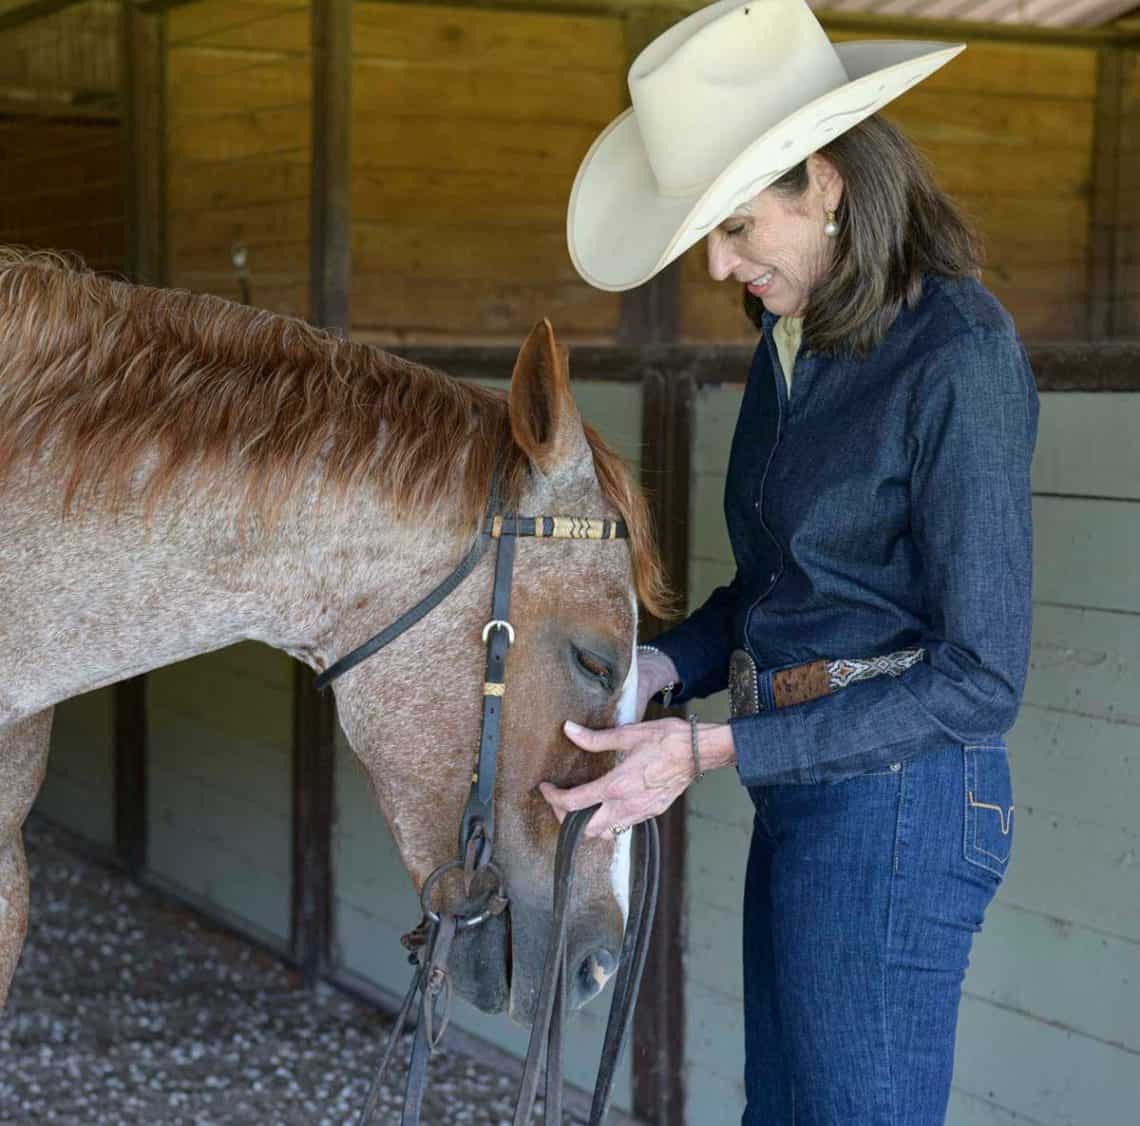 Barbra Schulte with her horse